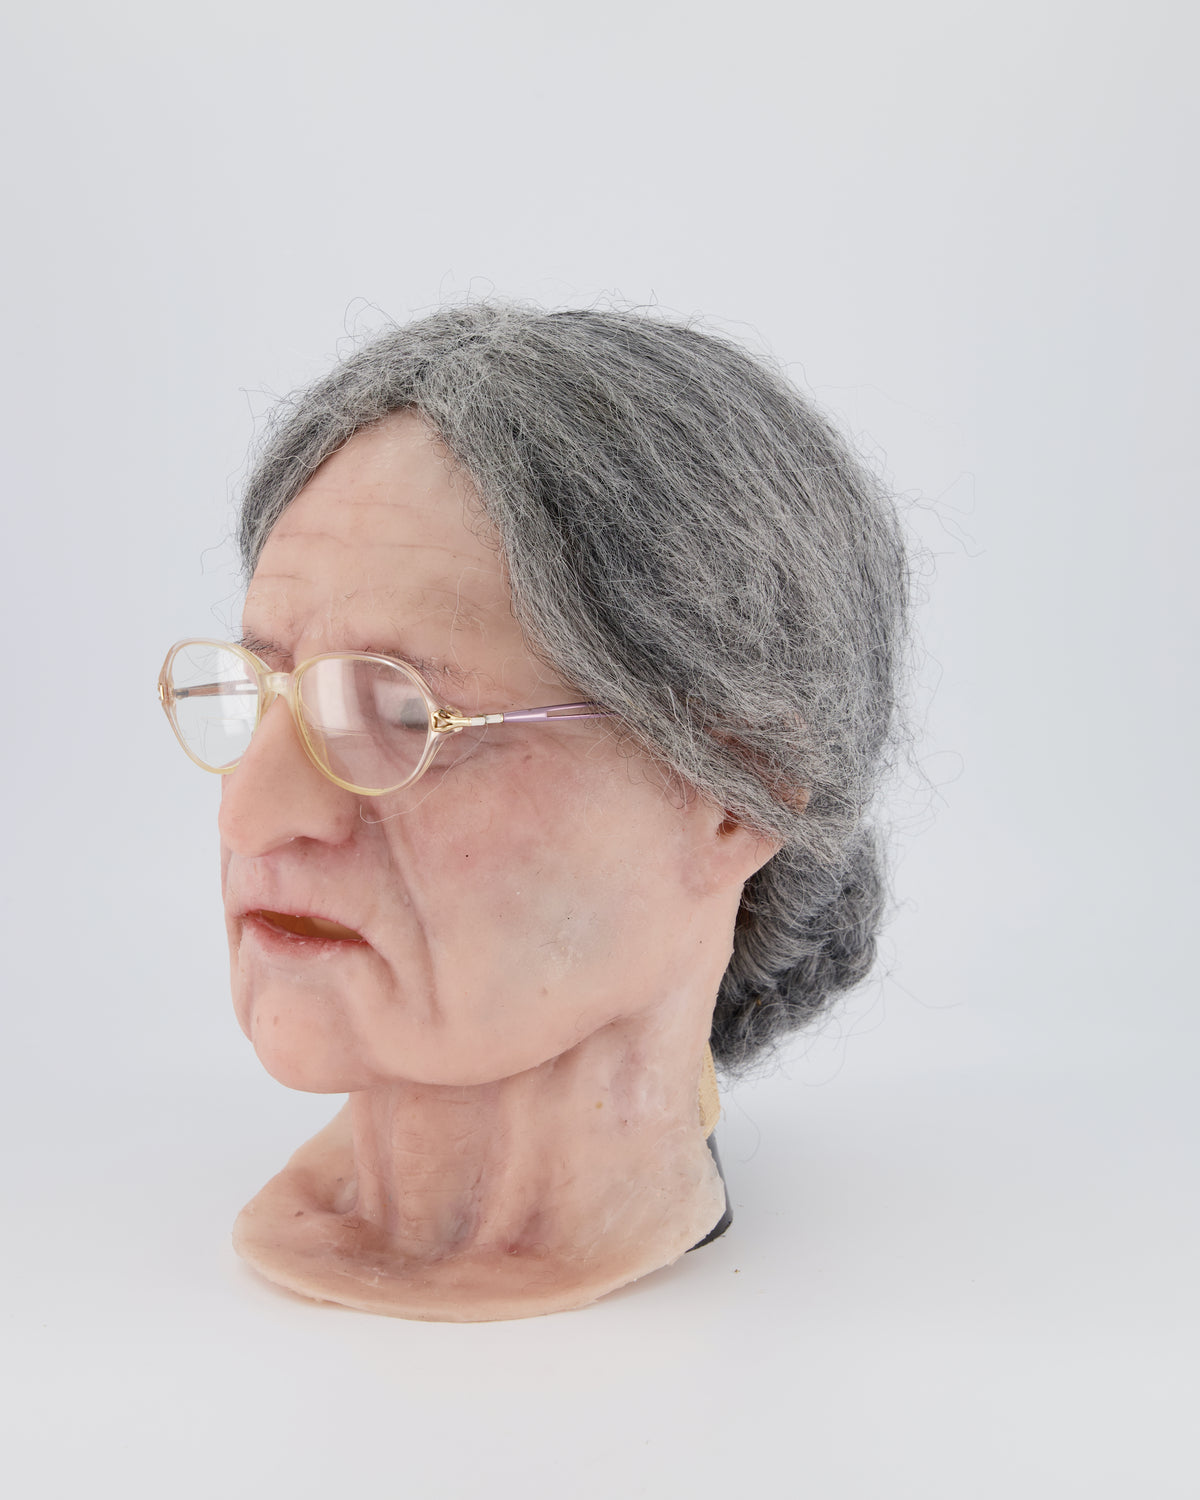 MM520 Ethel - Nursing Ann Facial Overlay